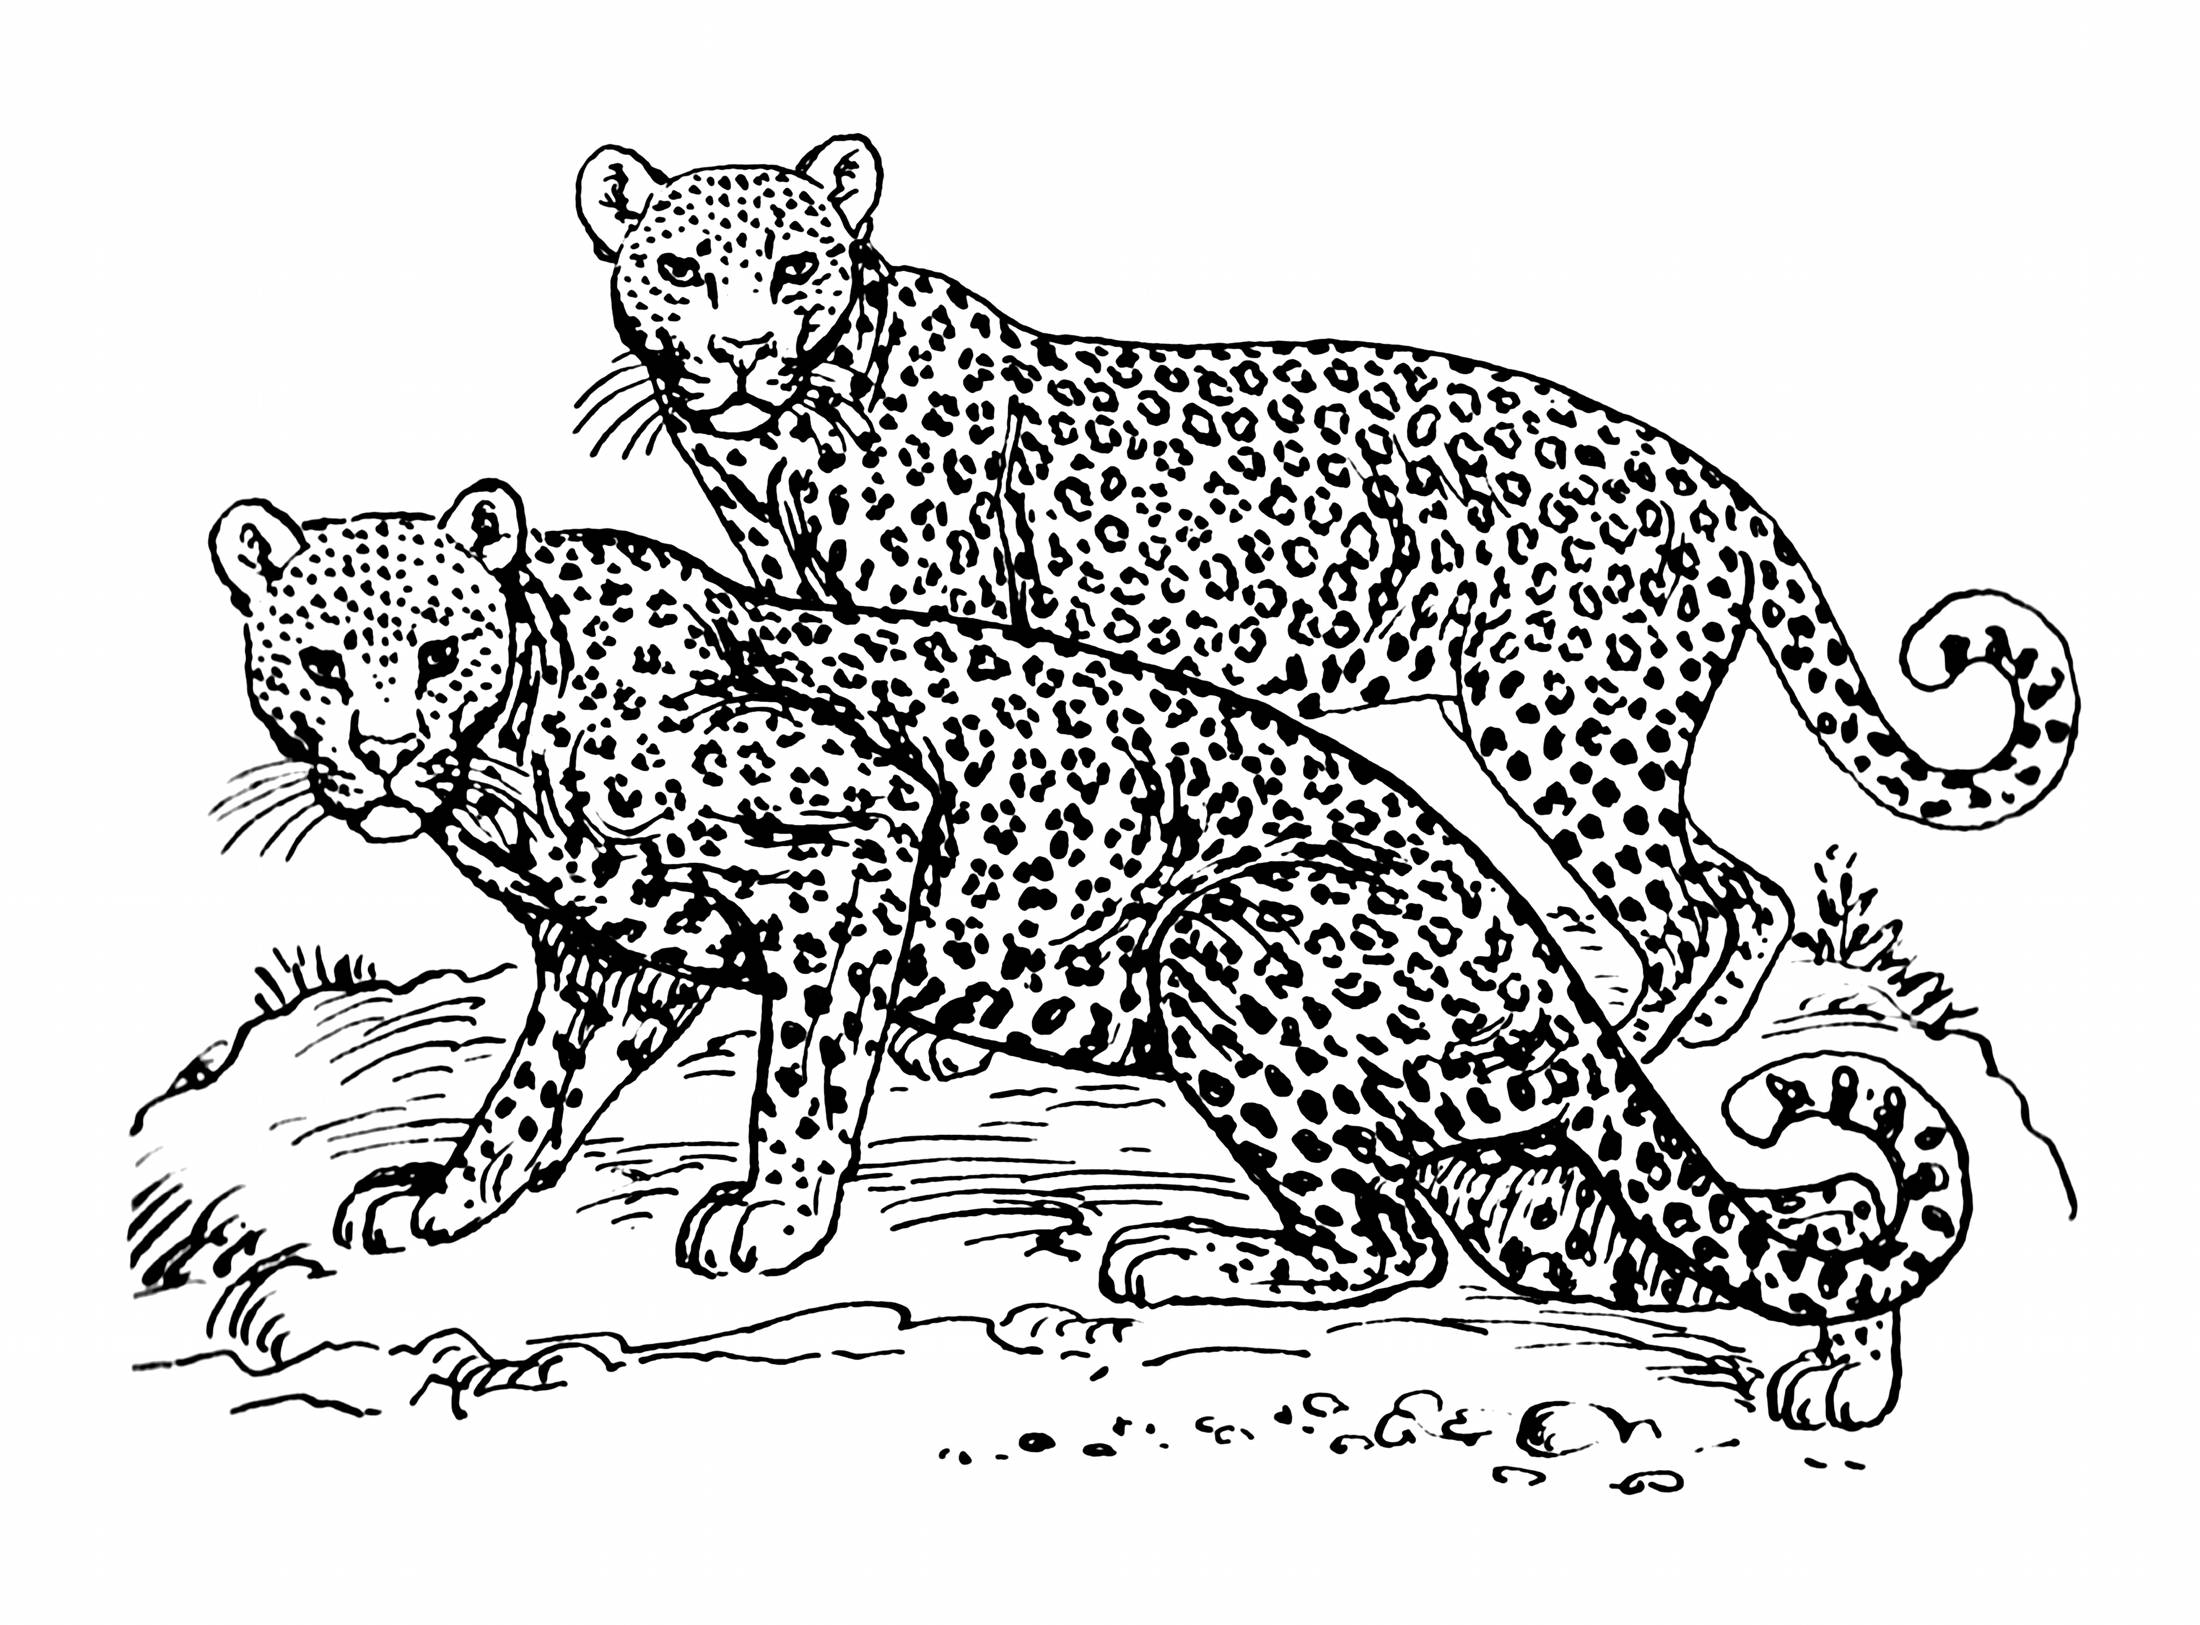 Big Cat Line Drawings